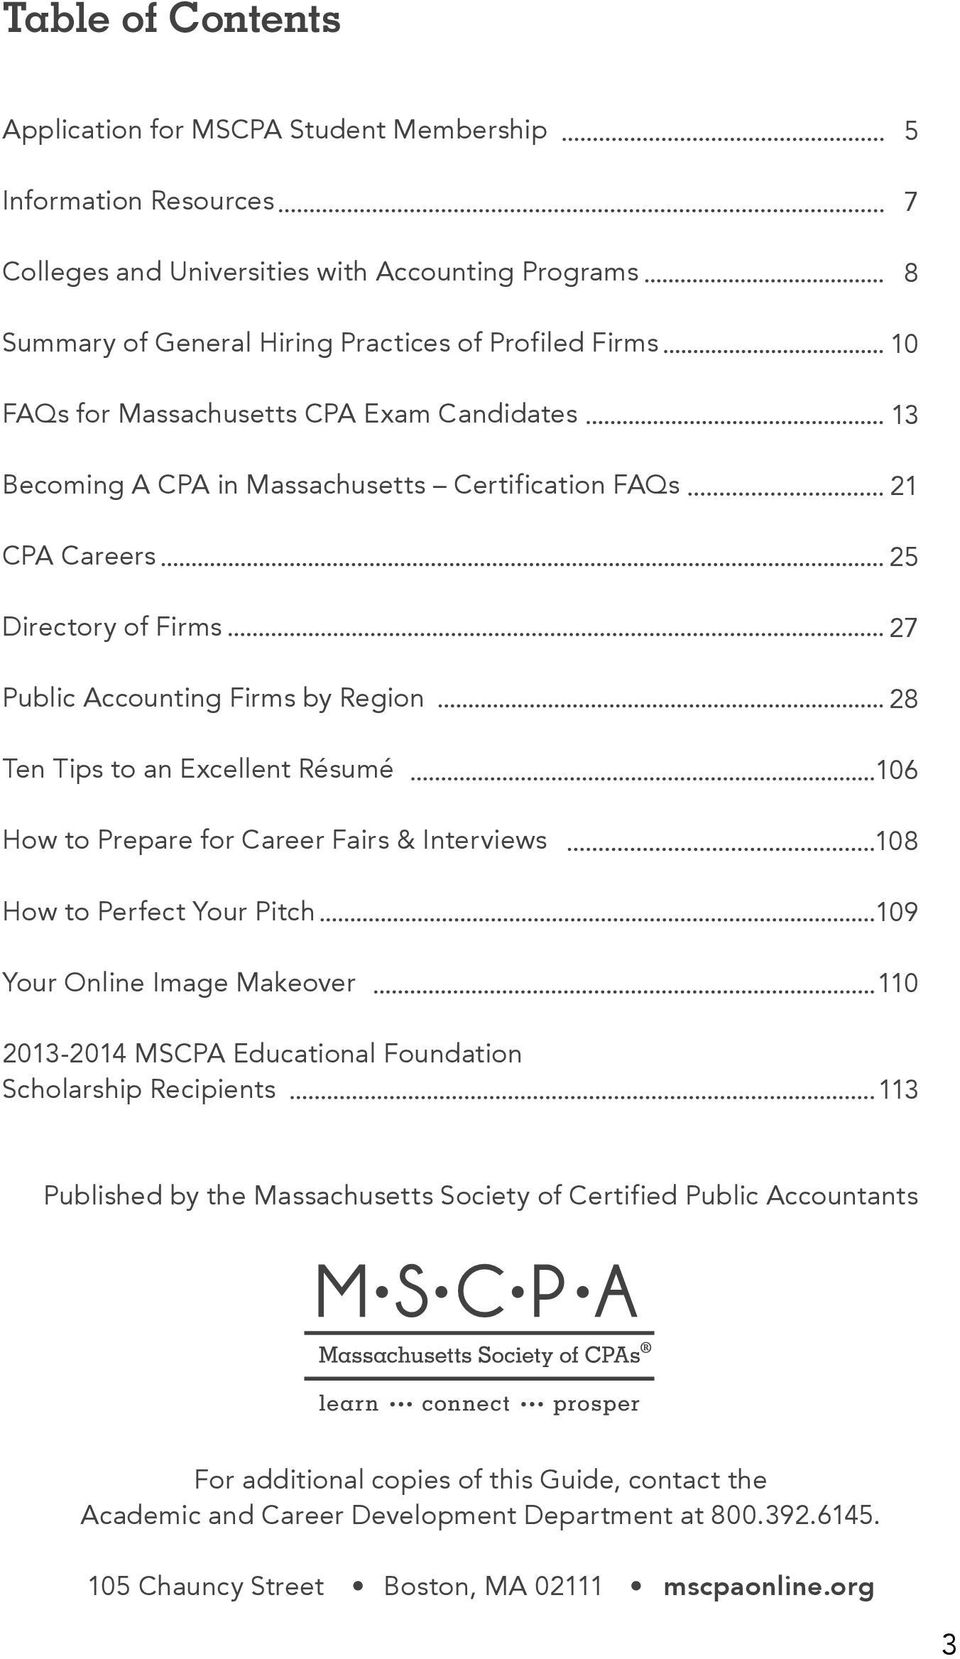 for Career Fairs & Interviews How to Perfect Your Pitch Your Online Image Makeover 2013-2014 MSCPA Educational Foundation Scholarship Recipients 5 7 8 10 13 21 25 27 28 106 108 109 110 113 Published